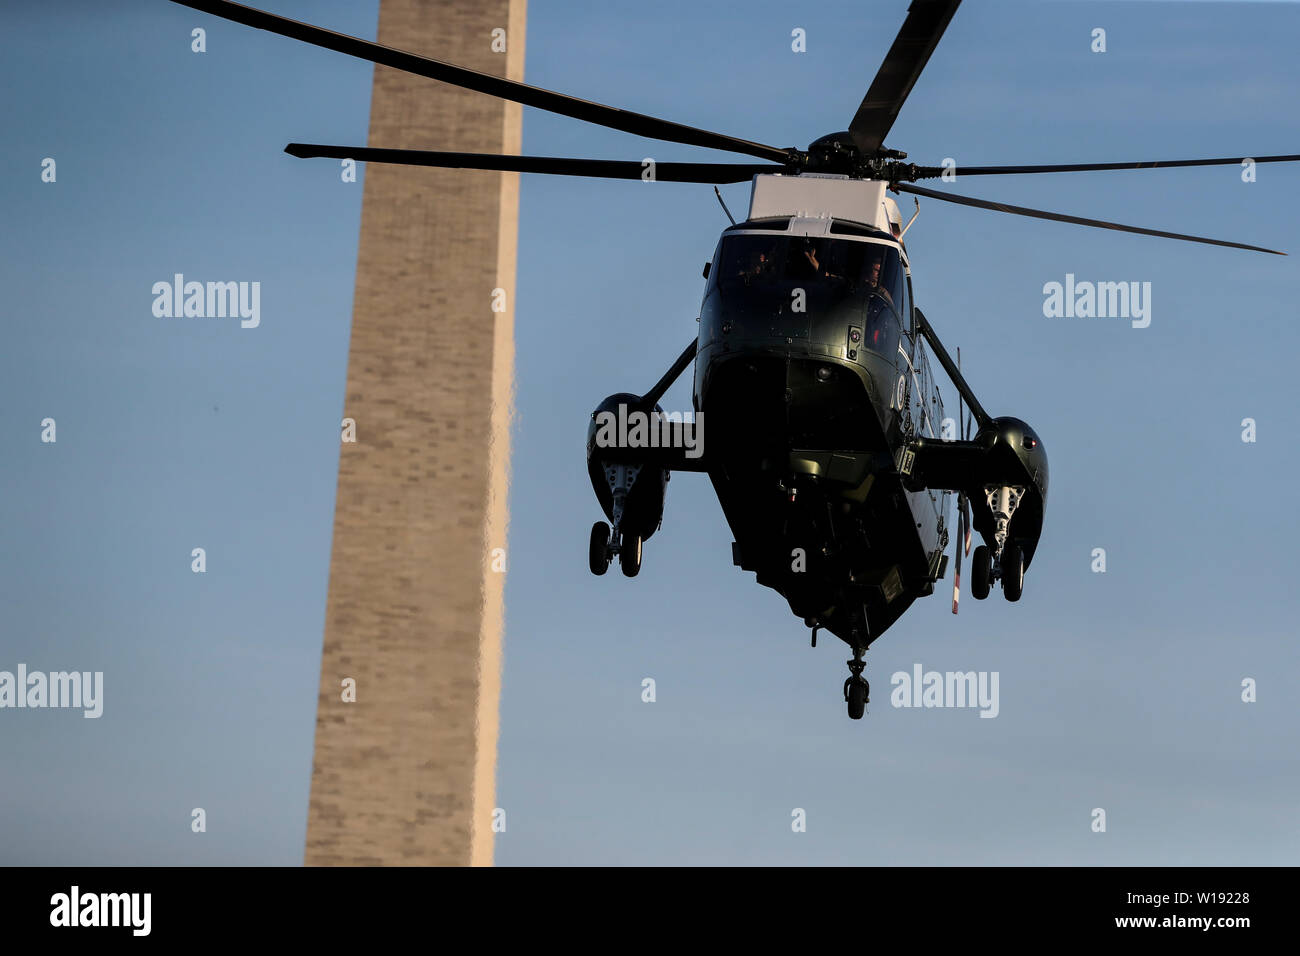 Washington DC, USA. 30th June, 2019. Marine One, with United States President Donald J. Trump aboard, arrives on the South Lawn of the White House on June 30, 2019 in Washington, DC. as the President returns to from South Korea. Credit: MediaPunch Inc/Alamy Live News Stock Photo